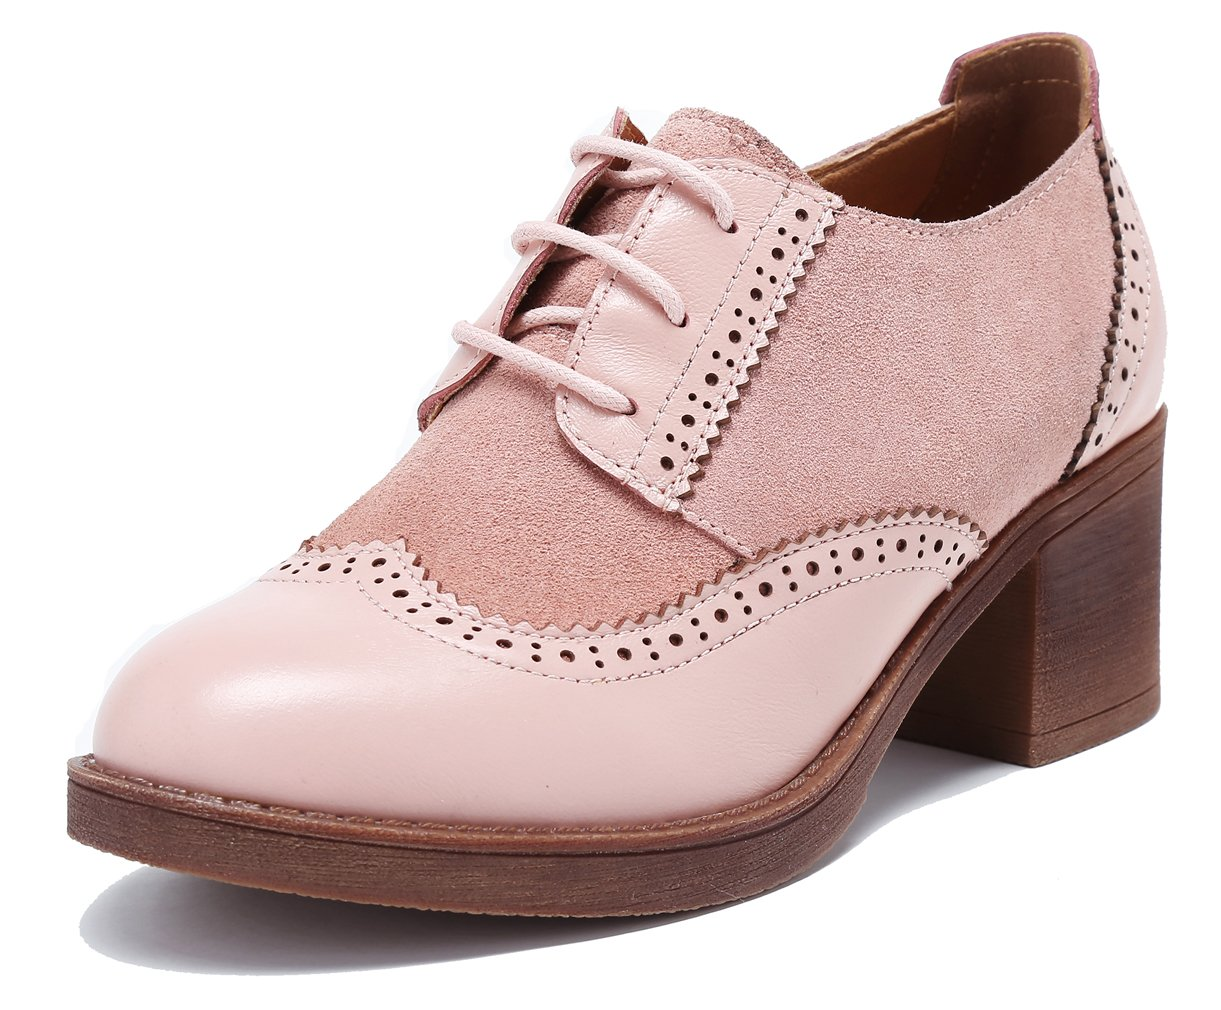 U-lite Womens Perforated Lace-up Round-Toe Brouge Shoes, Pieced-up Suede Leather Pump Summer Oxfords Pink7